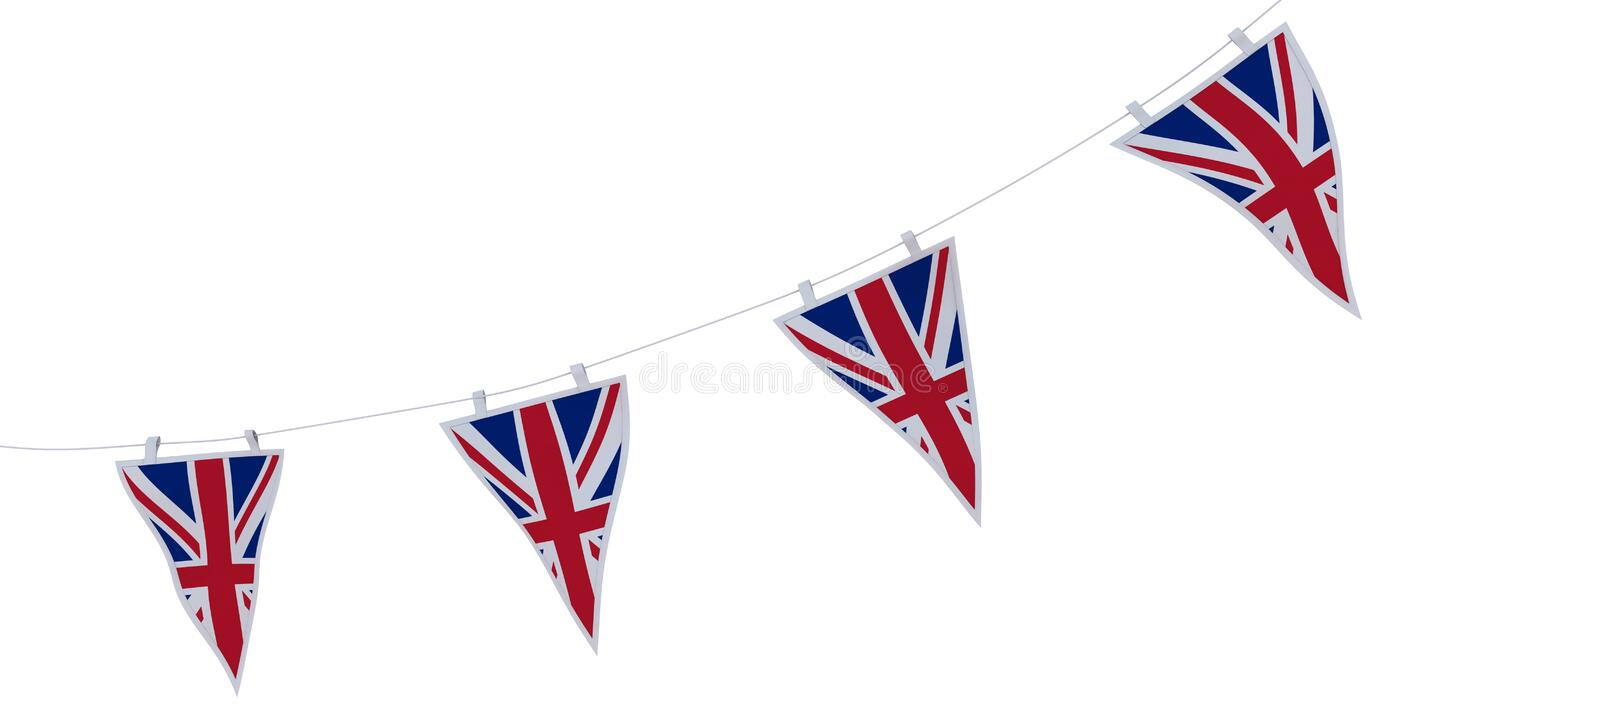 Download Union Jack Bunting And Banners Stock Image - Image: 24941871